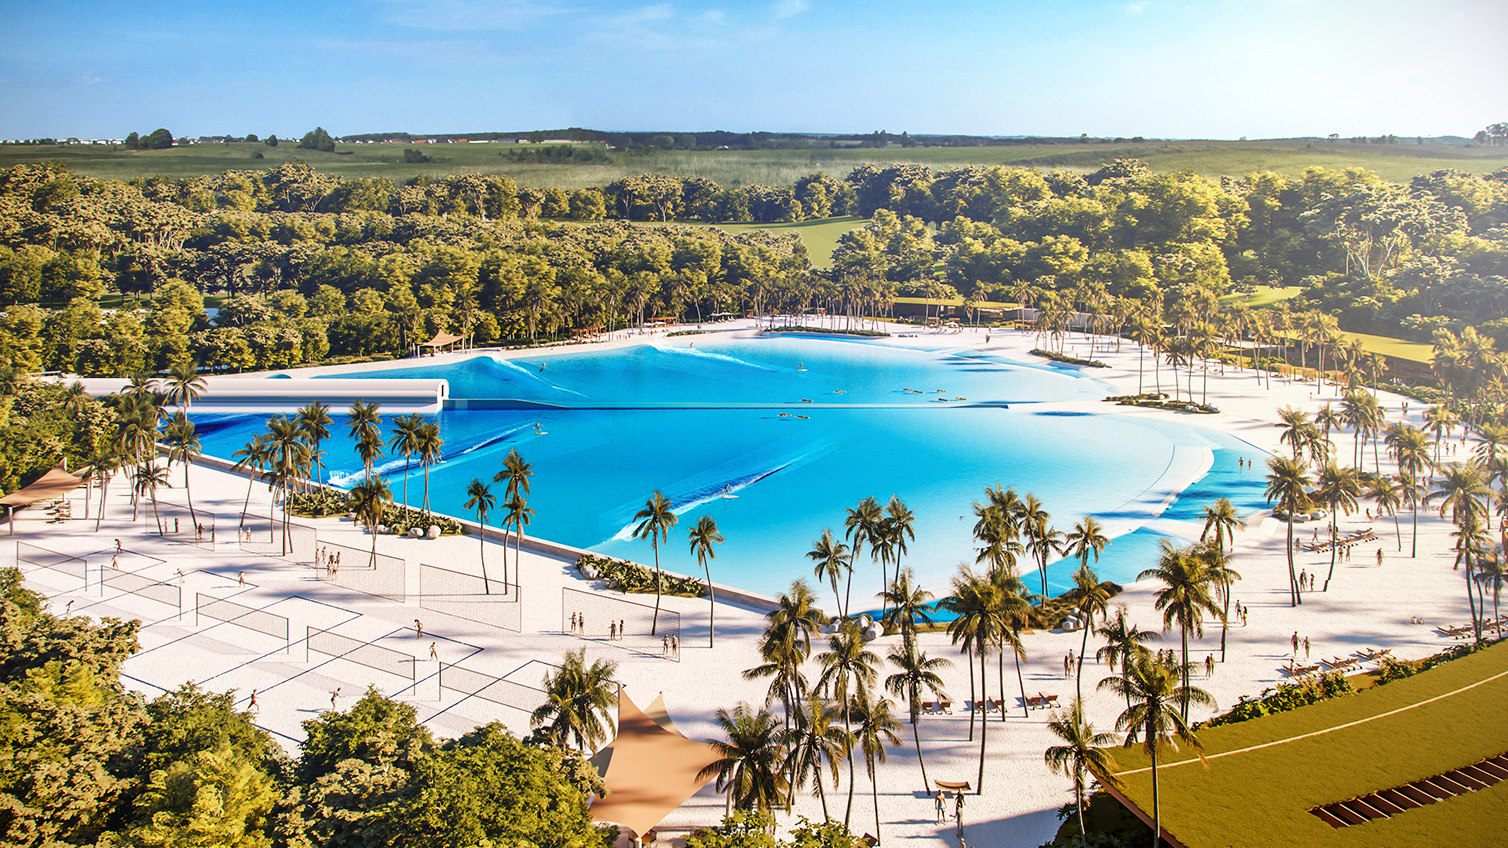 Inland resort in Brazil launches ambitious Cove project